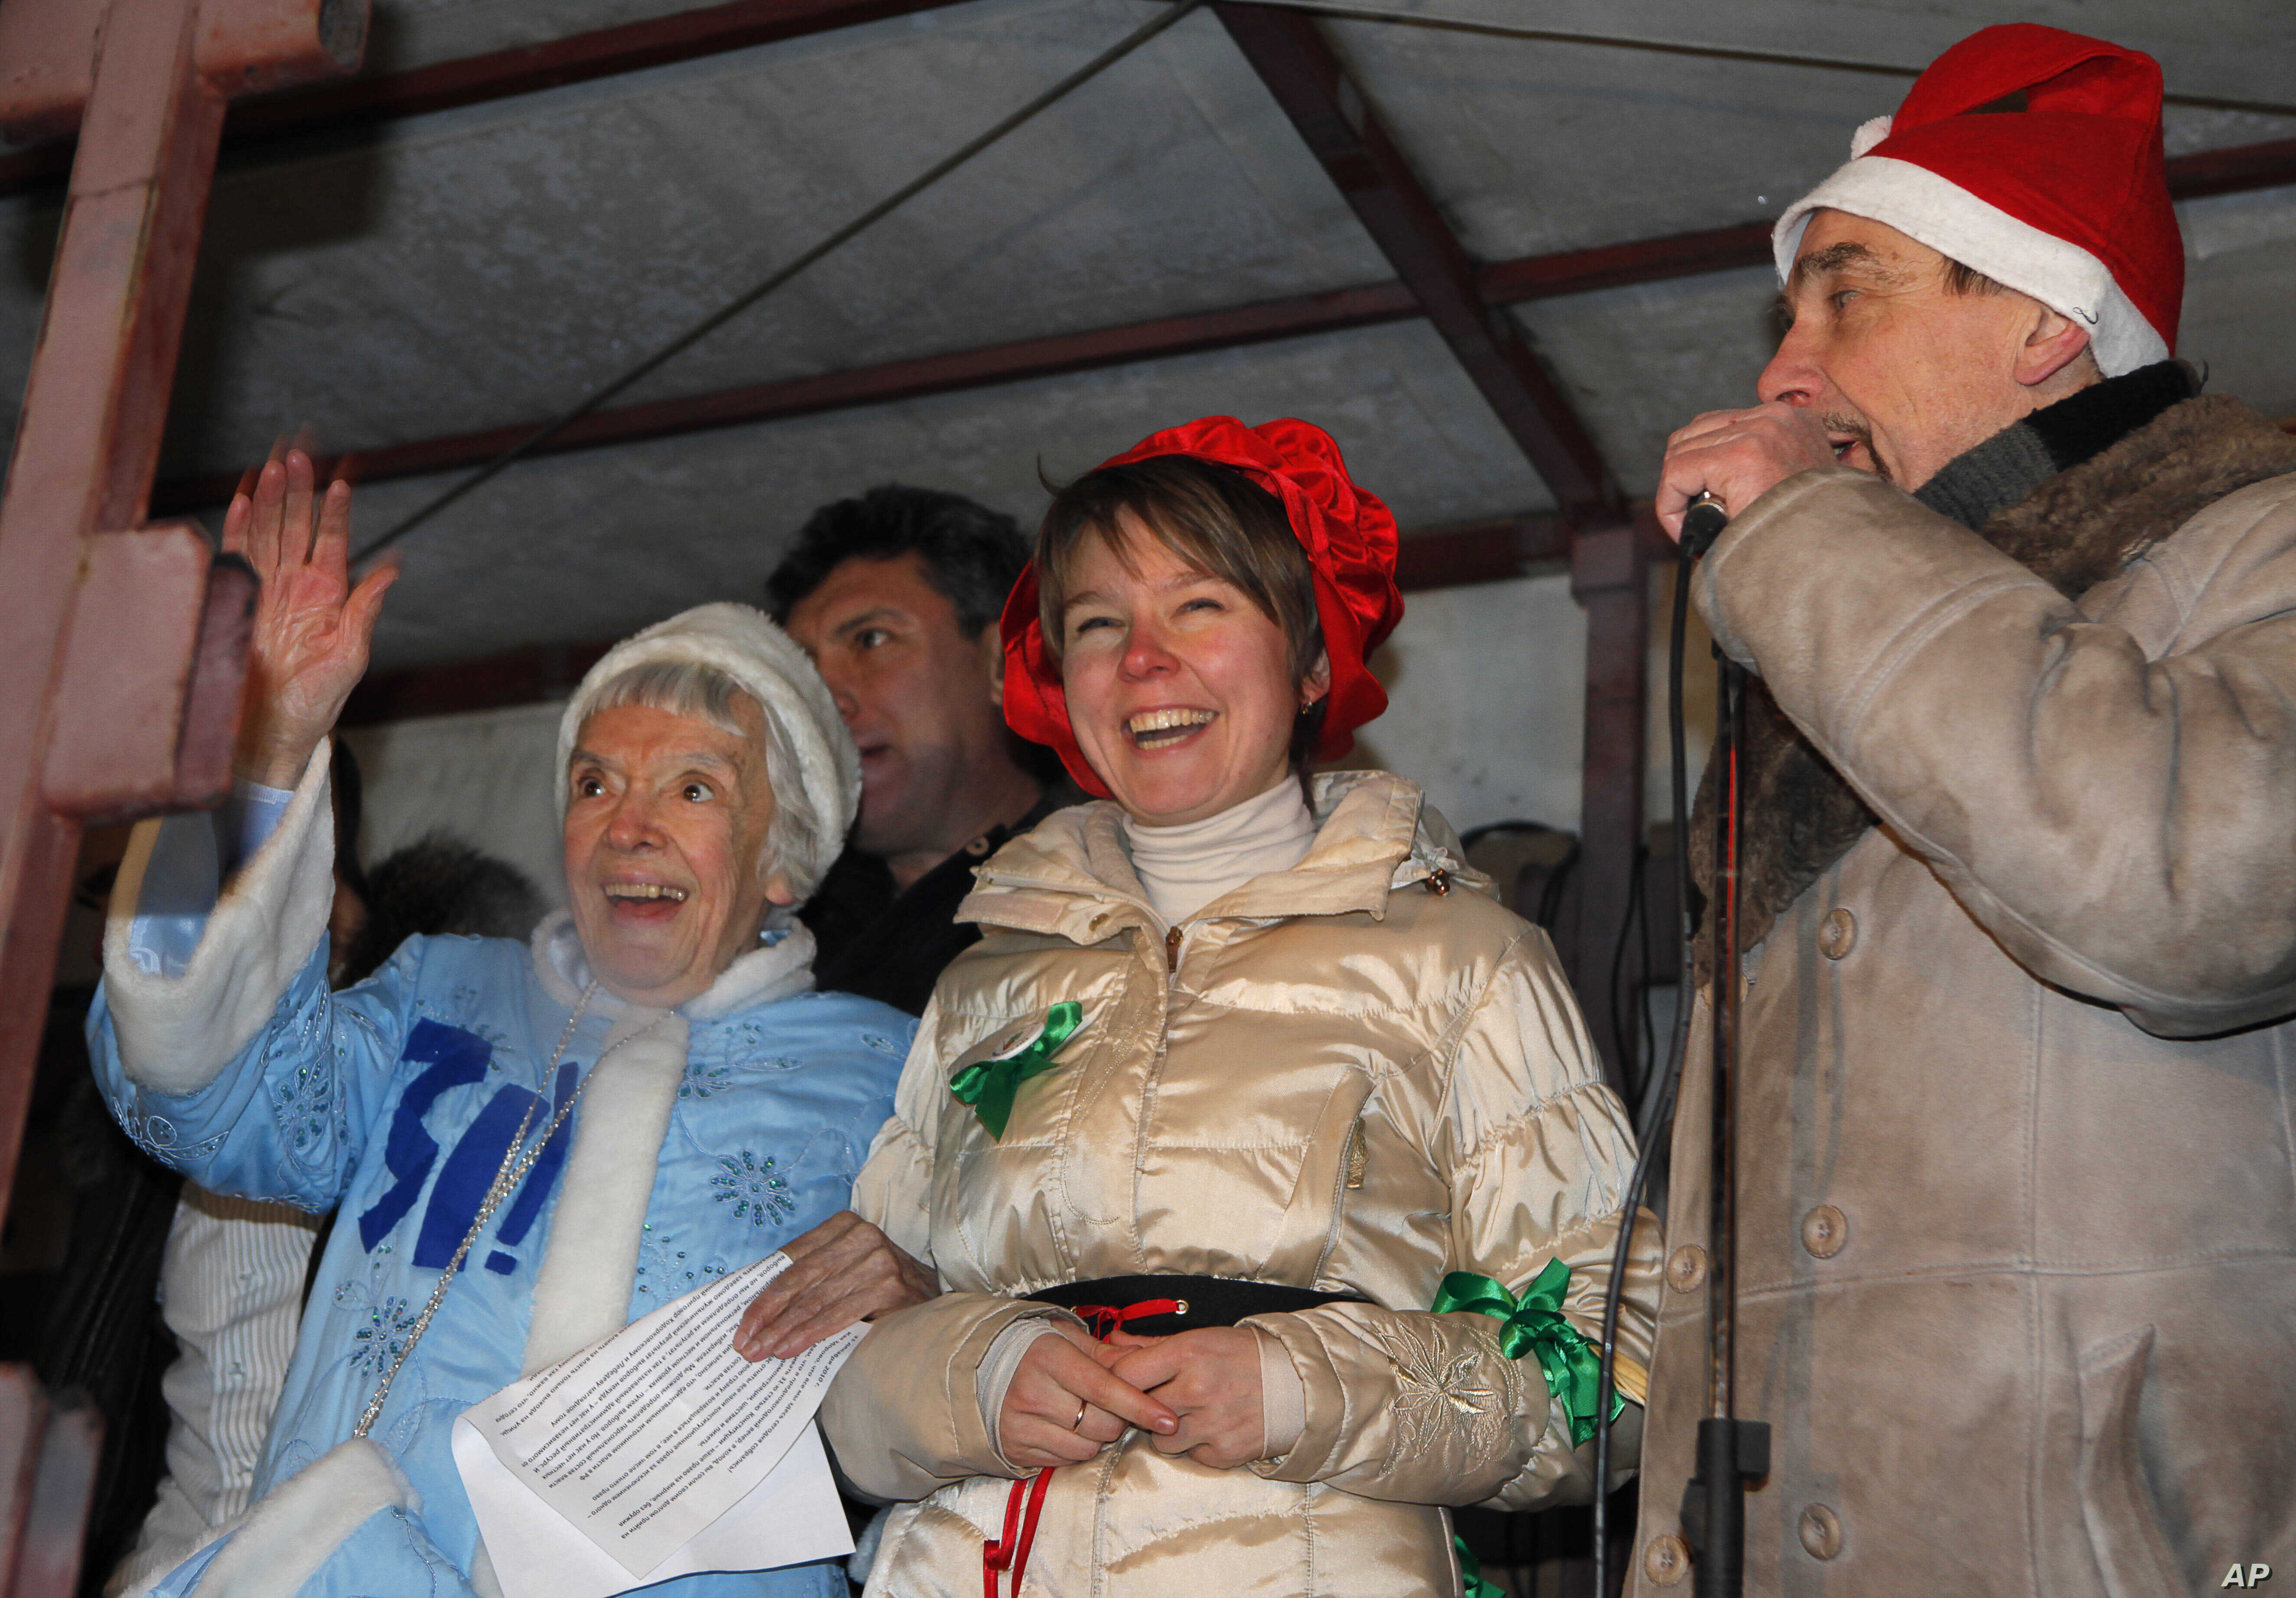 FILE - Russian human rights activist Lyudmila Alexeyeva, dressed as Snegurochka, Russian Snow Maiden, left, environmental activist Yevgenia Chirikova, center, and  prominent rights activist Lev Ponomaryov speak during a rally in central Moscow, Dec. ...